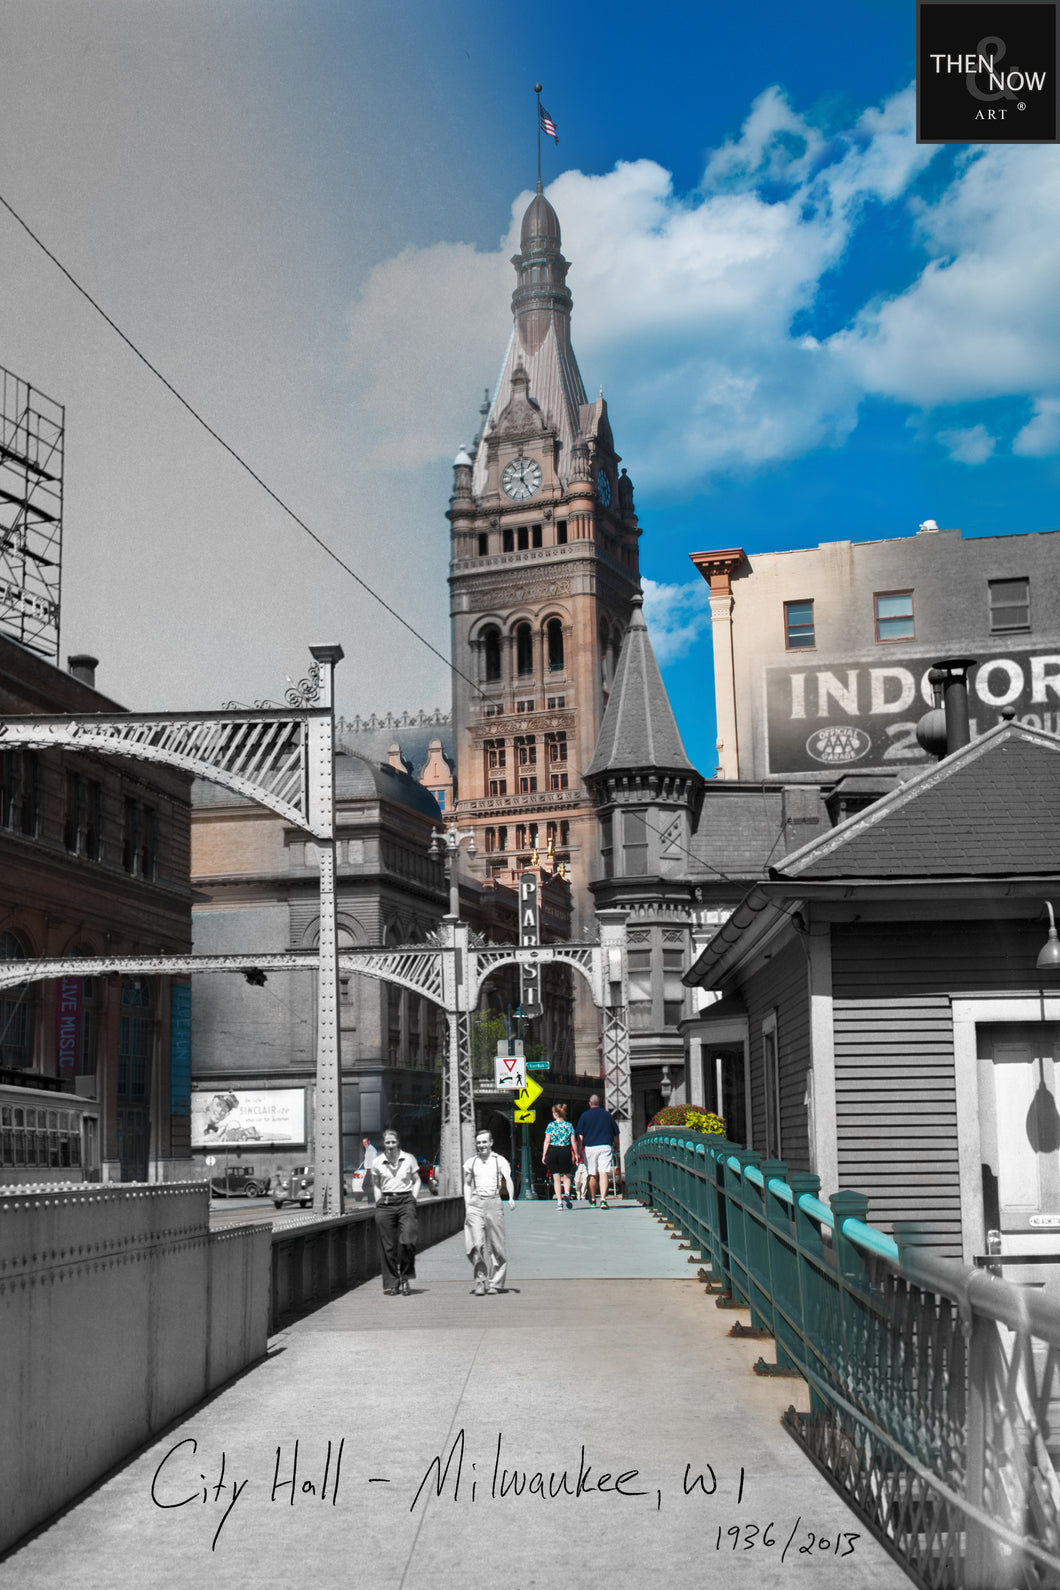 Then & Now Art®: City Hall - Milwaukee, WI [1936/2013]